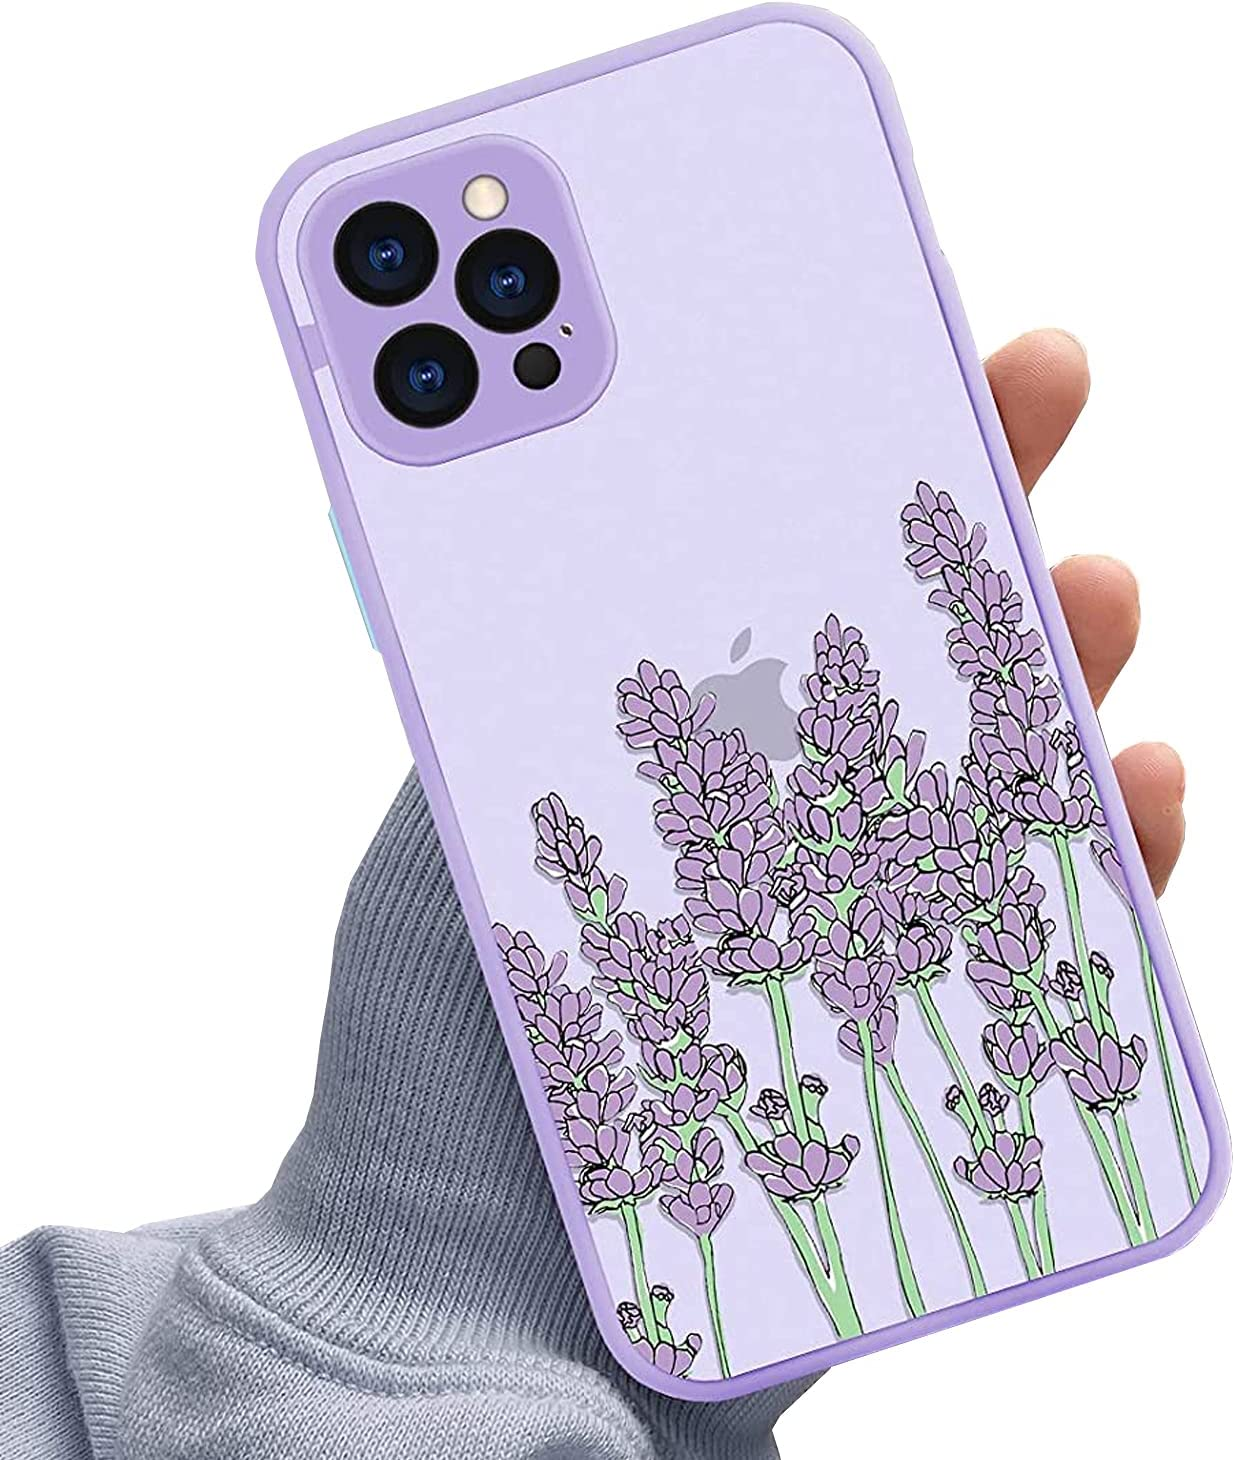 KANGHAR for iPhone 12 Pro Max Case with Screen Protector, Matte Full Body Shockproof Protective Floral Girls Women Hard Case with TPU Bumper Cover Phone Case for iPhone 12 Pro Max, Purple Lavender